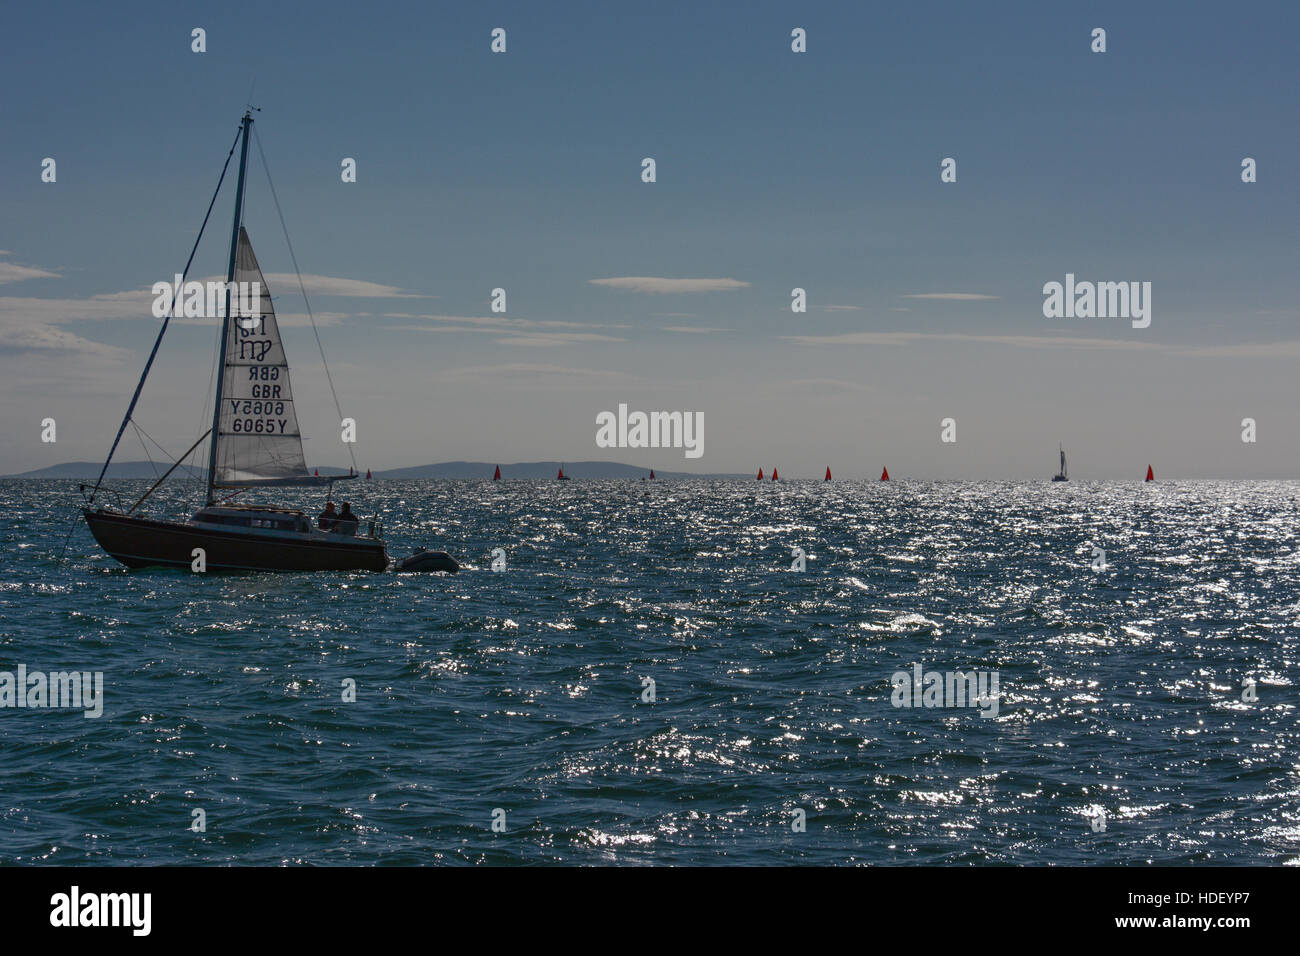 An anchored yacht with the mainsail partly raised as a steadying sail watches dinghy racing on a summers morning. Stock Photo